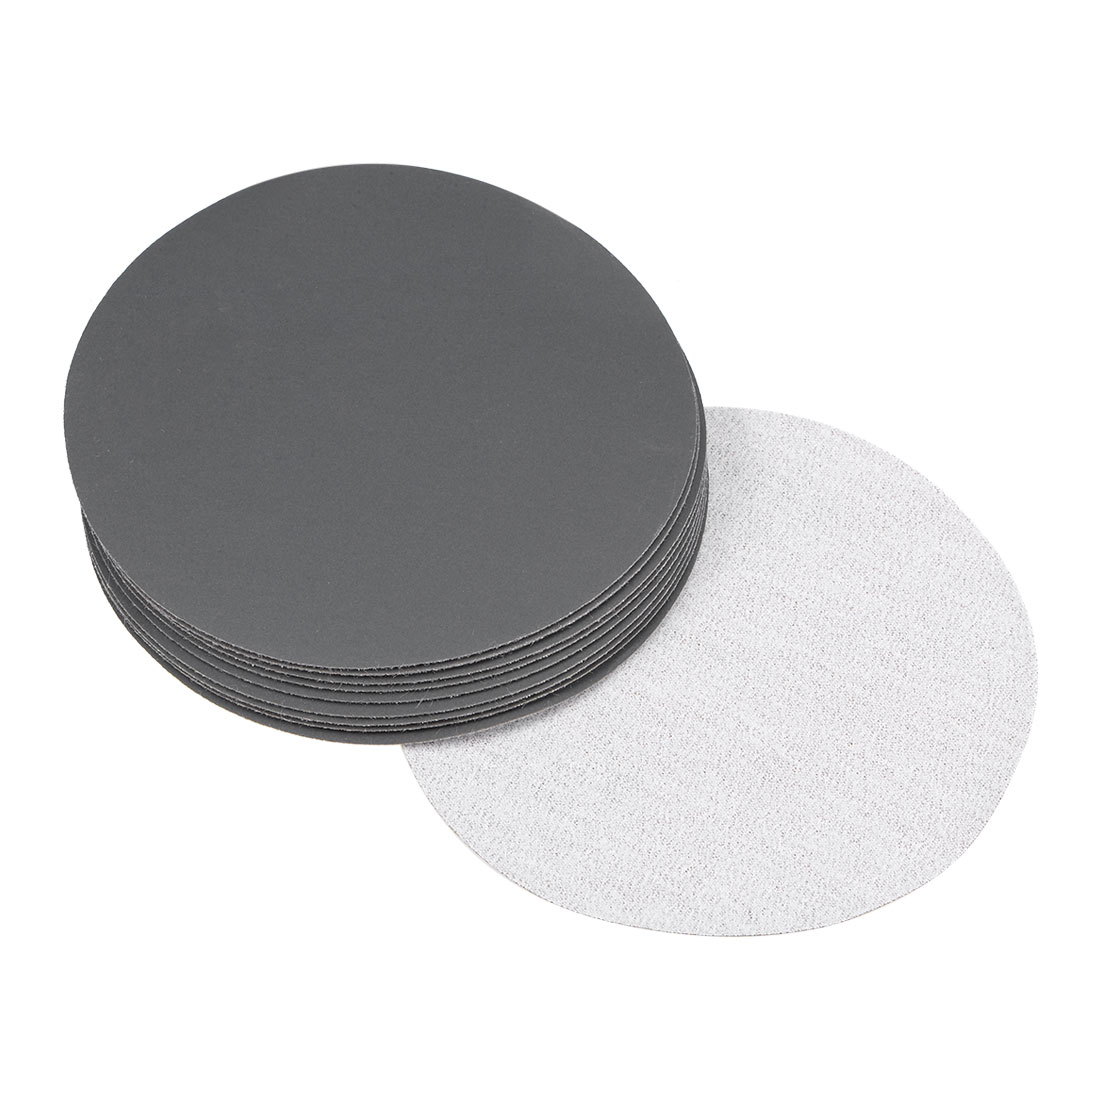 5 inch Wet Dry Discs 1200 Grit Hook and Loop Sanding Disc Silicon Carbide 10pcs